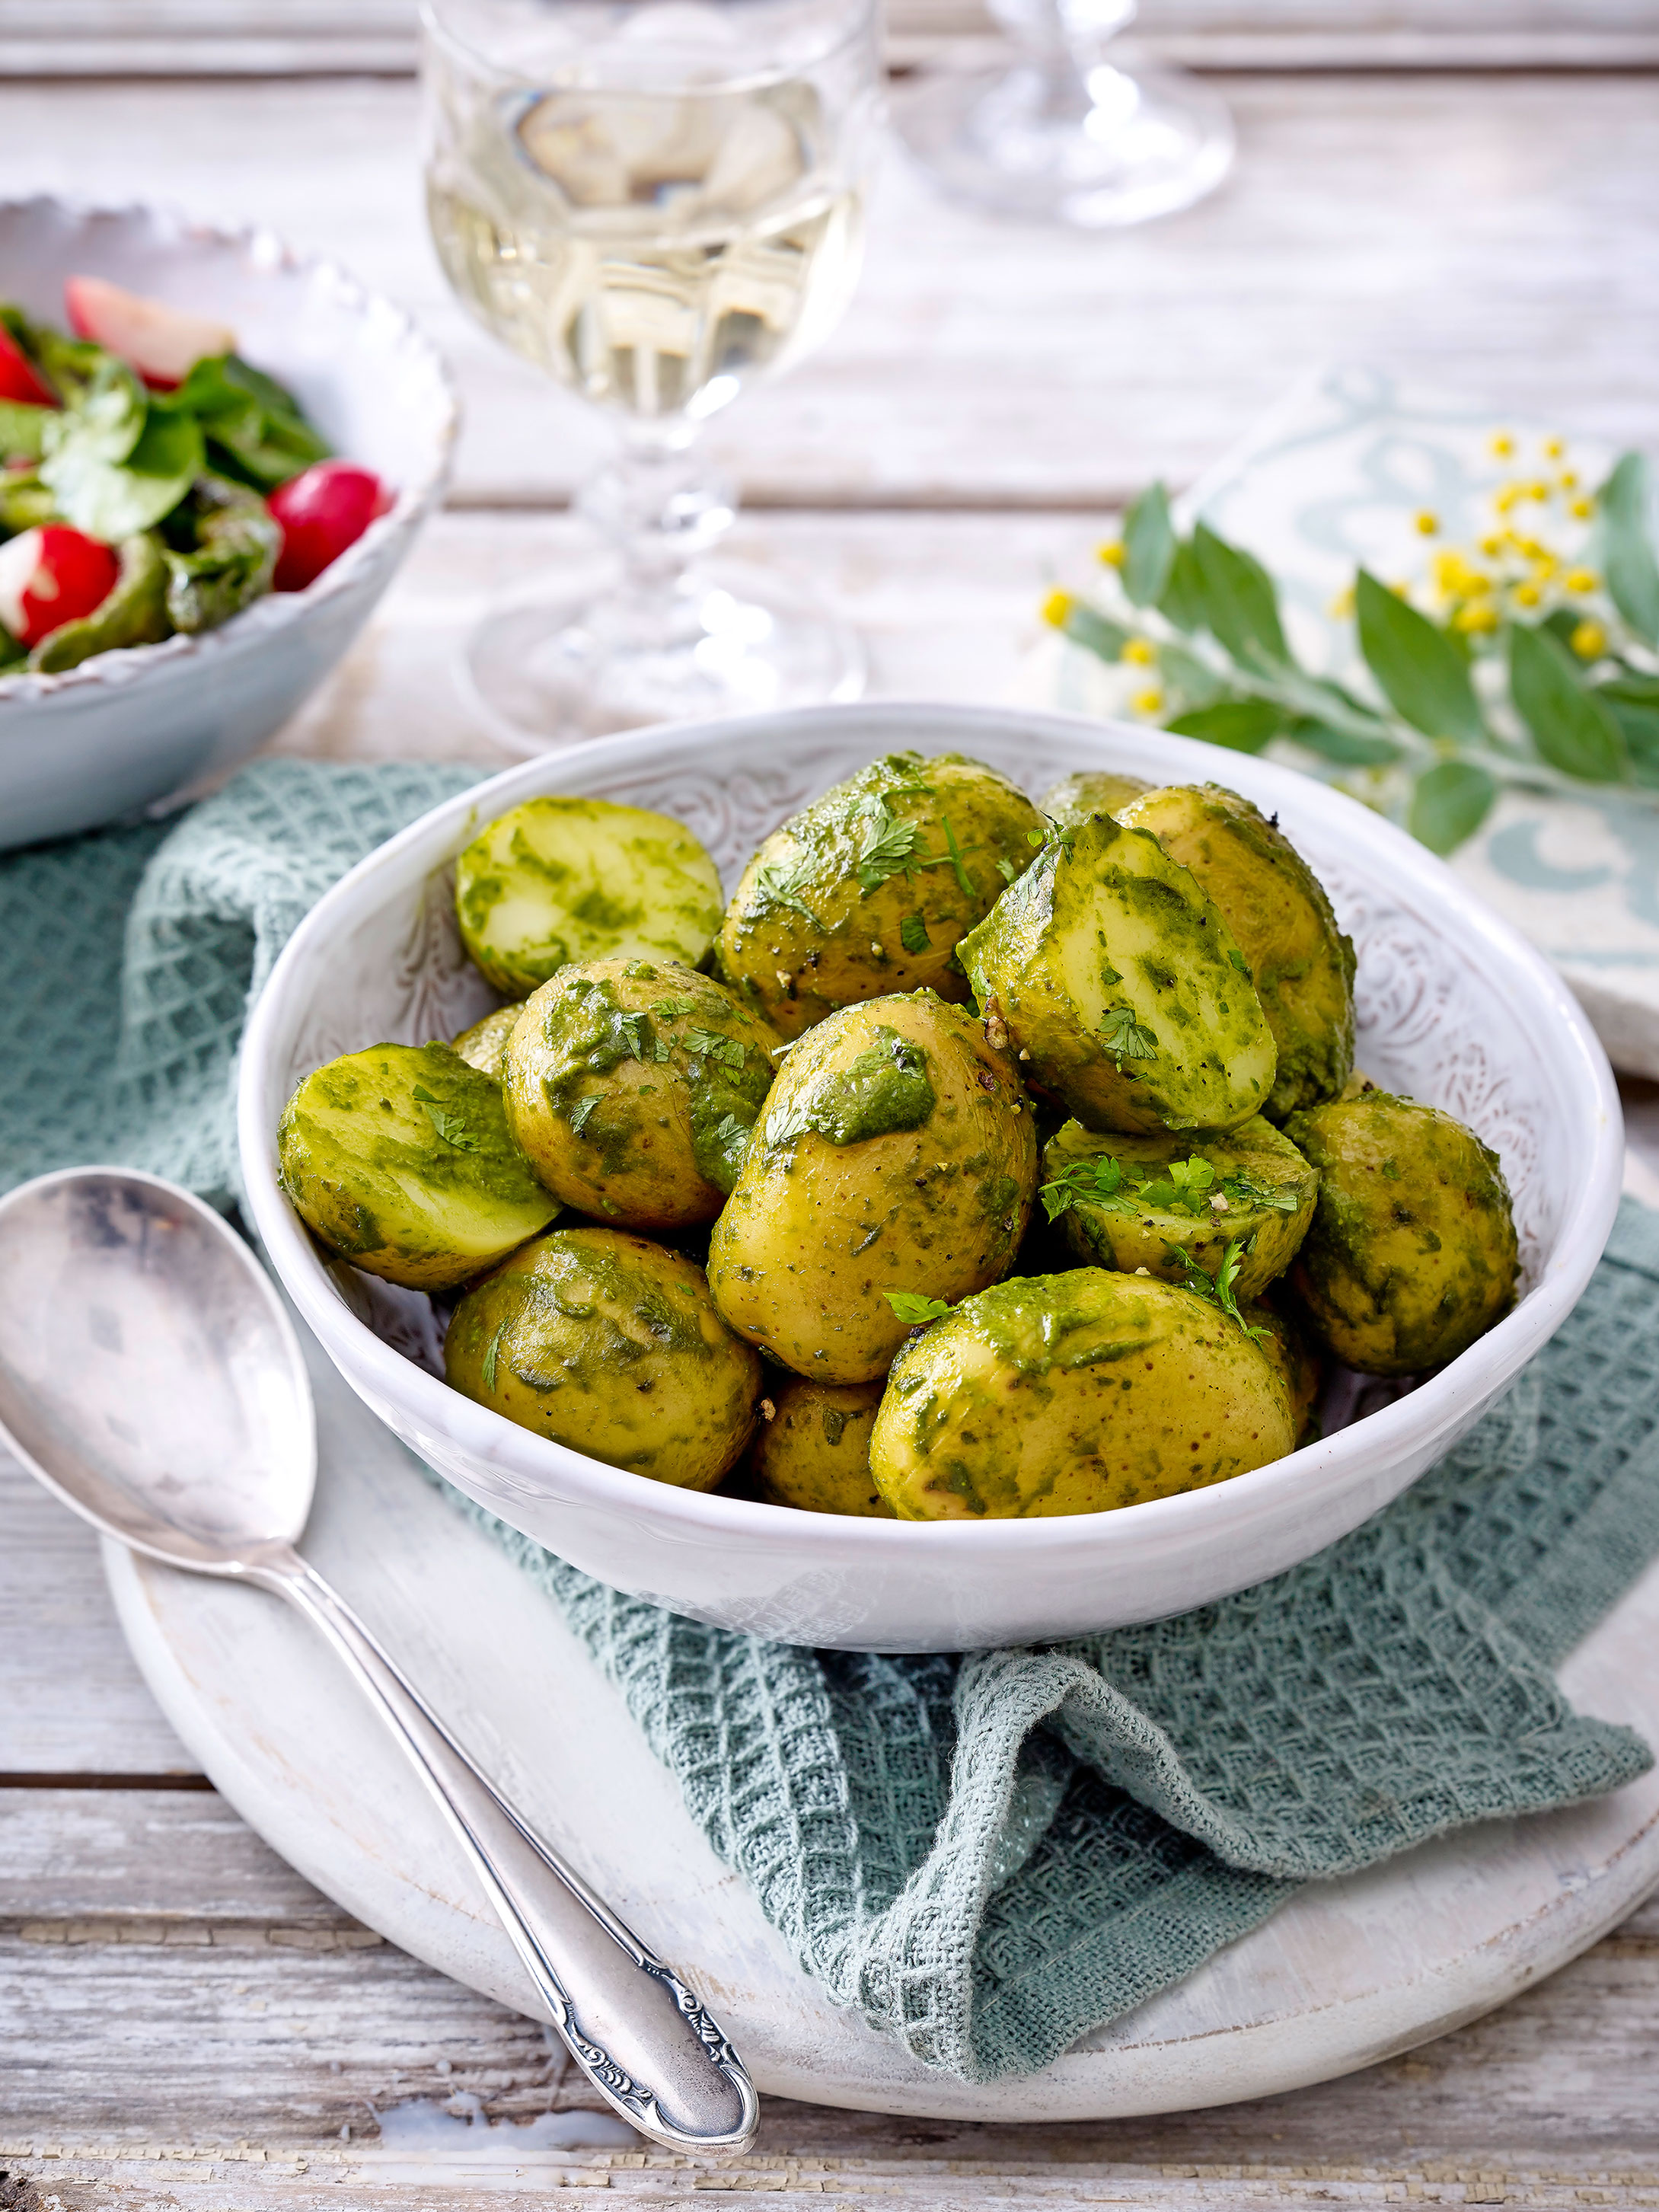 New potatoes tossed in wild garlic and olive oil. Simple and delicious.